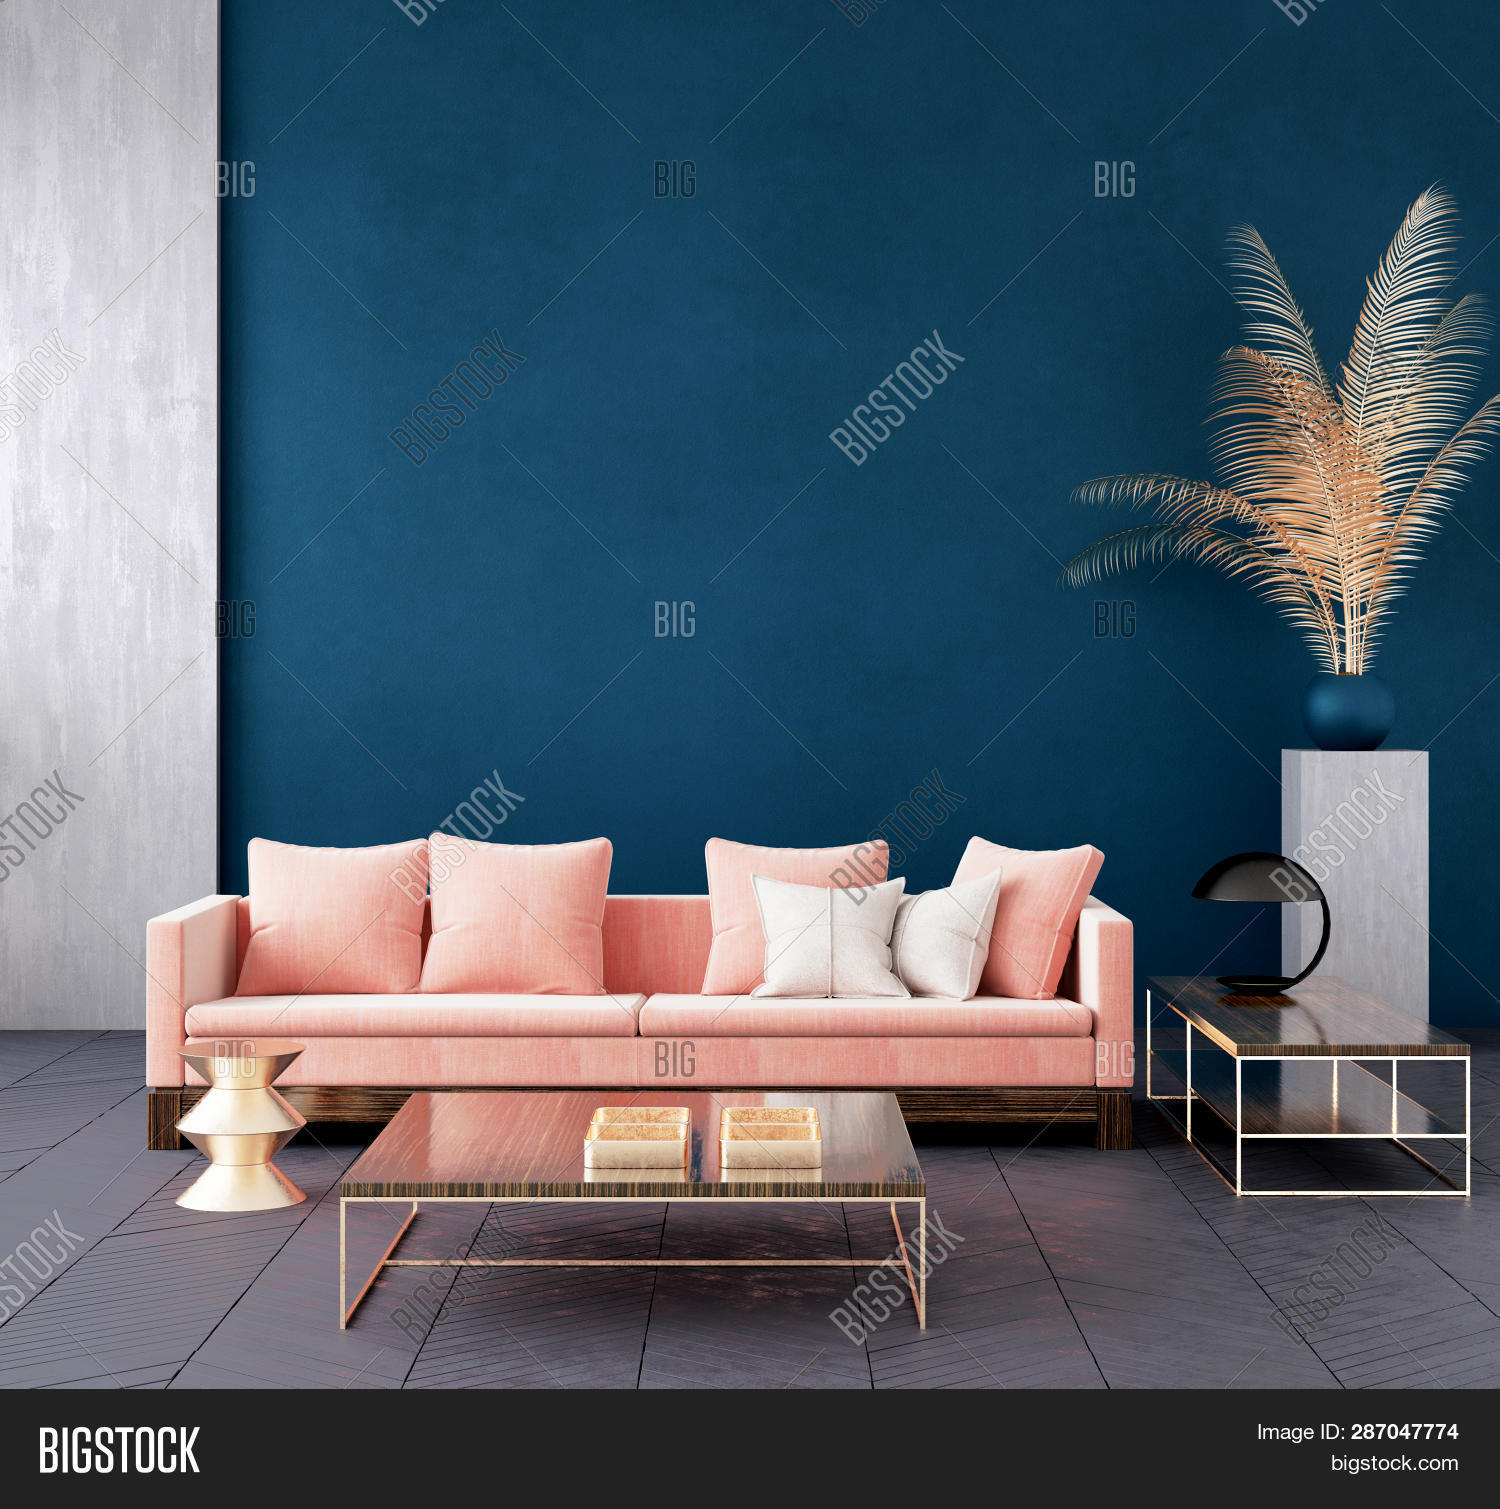 3d,apartment,background,blue,color,comfort,concrete,contemporary,couch,cozy,cushions,dark,decor,decoration,design,fabric,floor,frontal,furniture,gold,golden,home,hotel,illustration,indoor,interior,living,luxury,minimalism,mock,mock-up,mockup,modern,nobody,parquet,pillow,pink,plaid,room,simple,sofa,space,style,table,trendy,up,wall